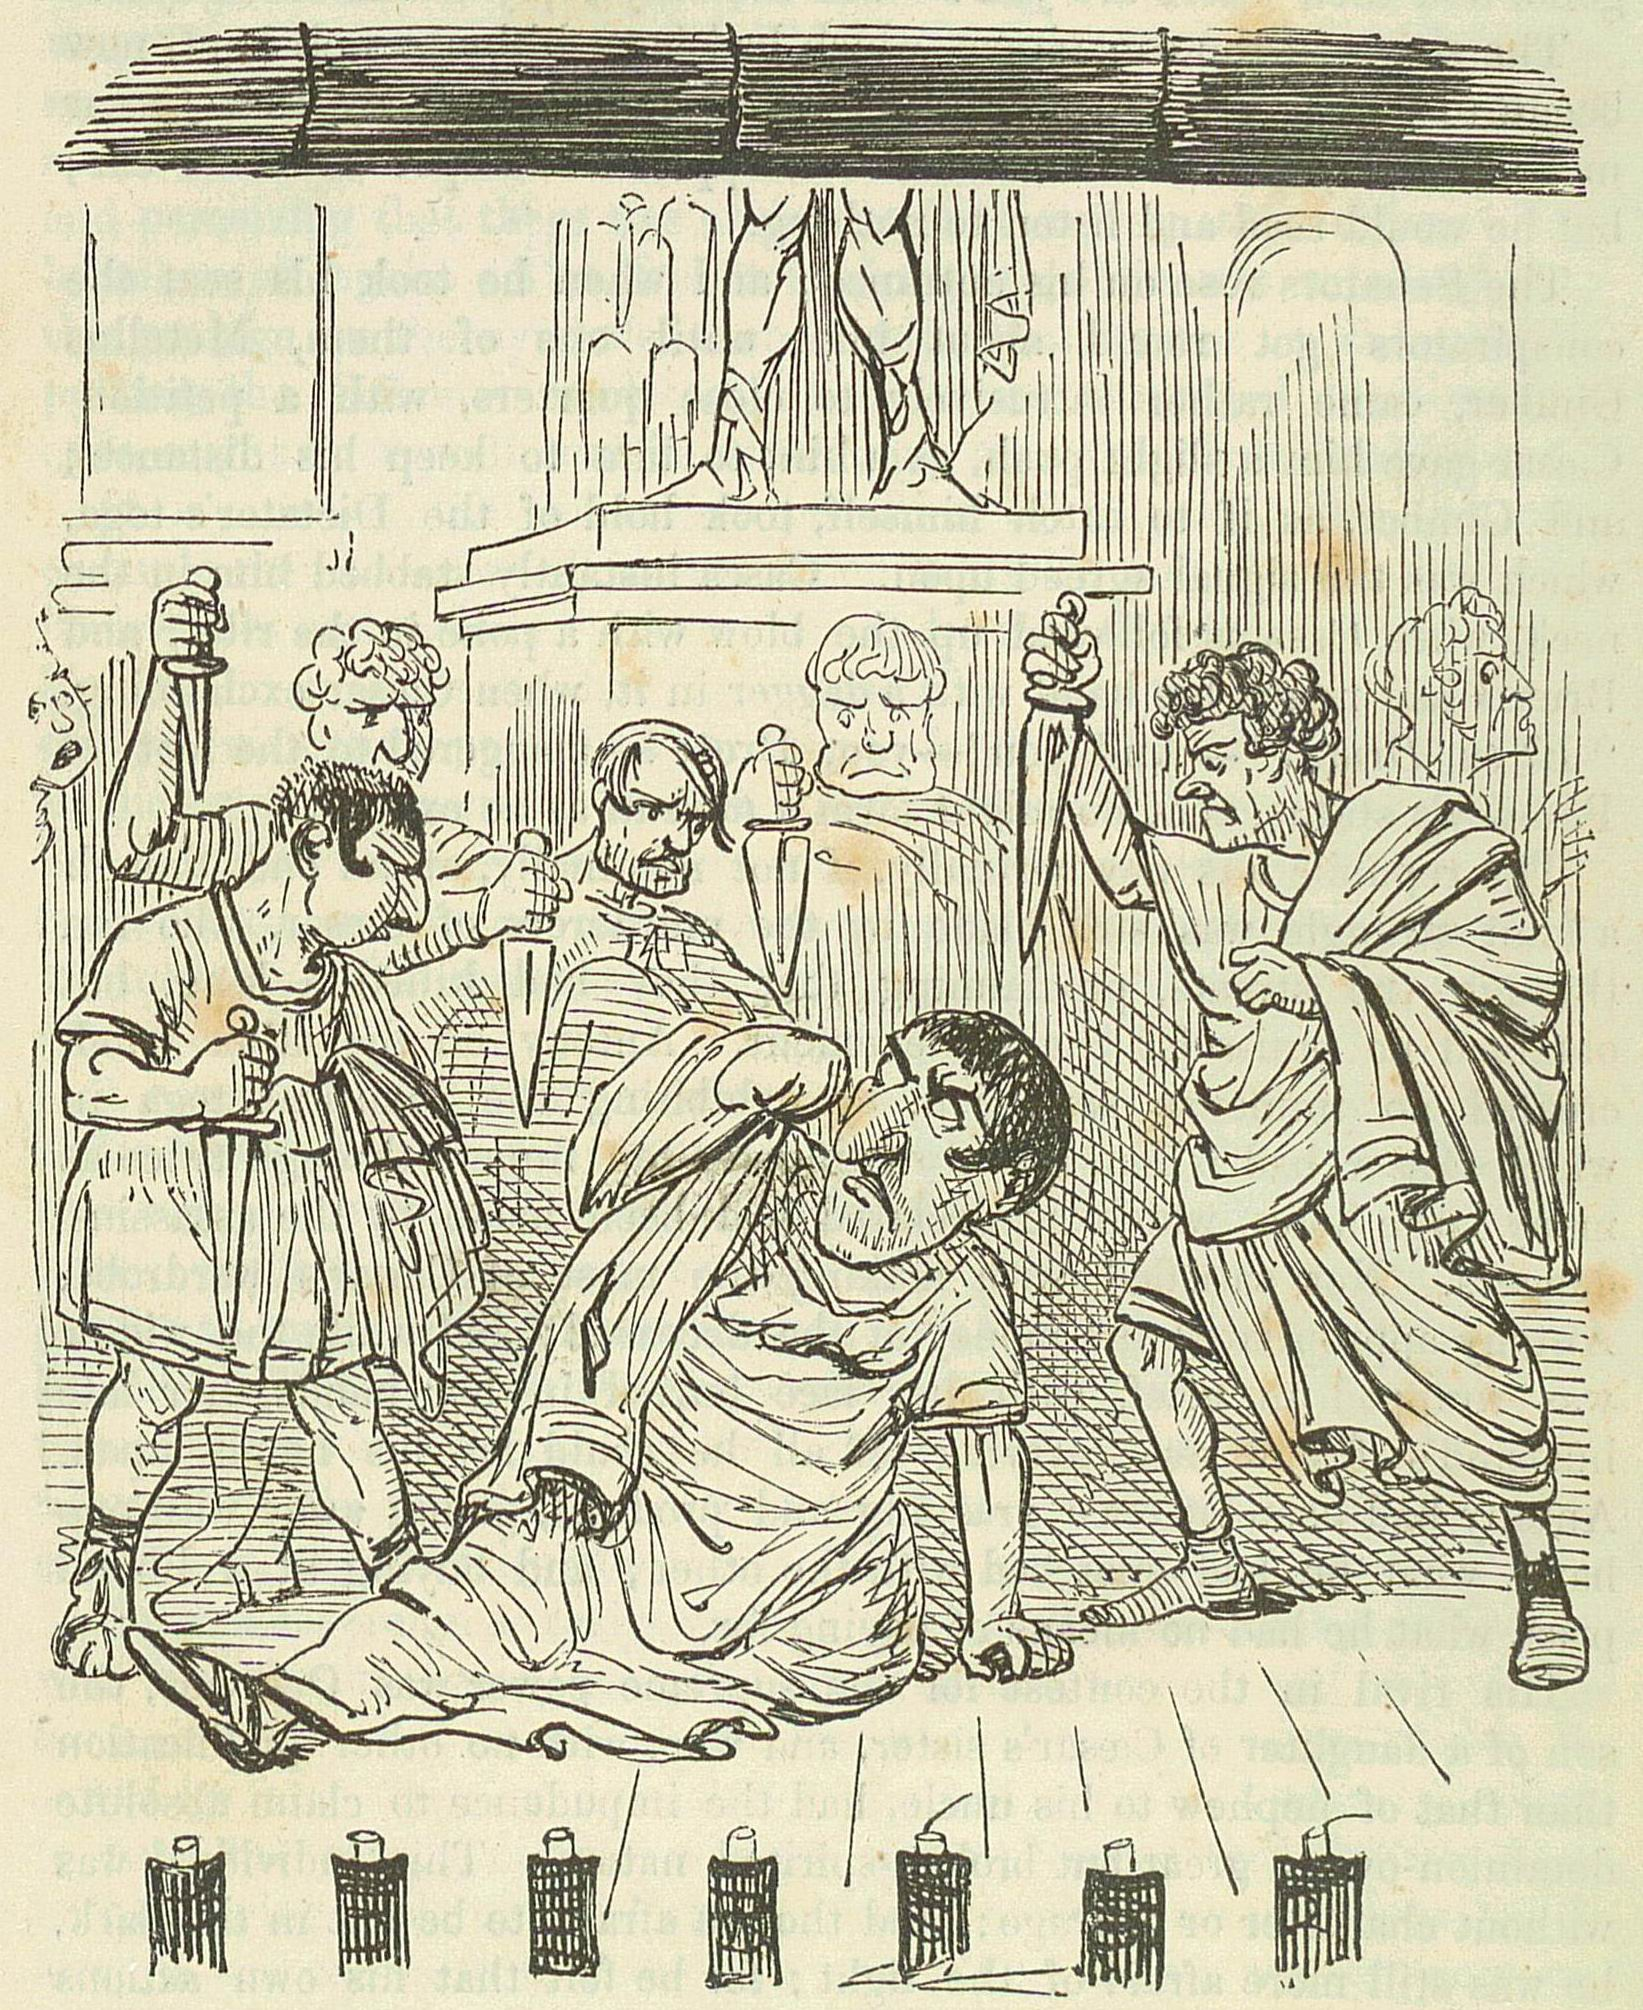 http://upload.wikimedia.org/wikipedia/commons/6/61/Comic_History_of_Rome_p_308_The_End_of_Julius_Caesar.jpg